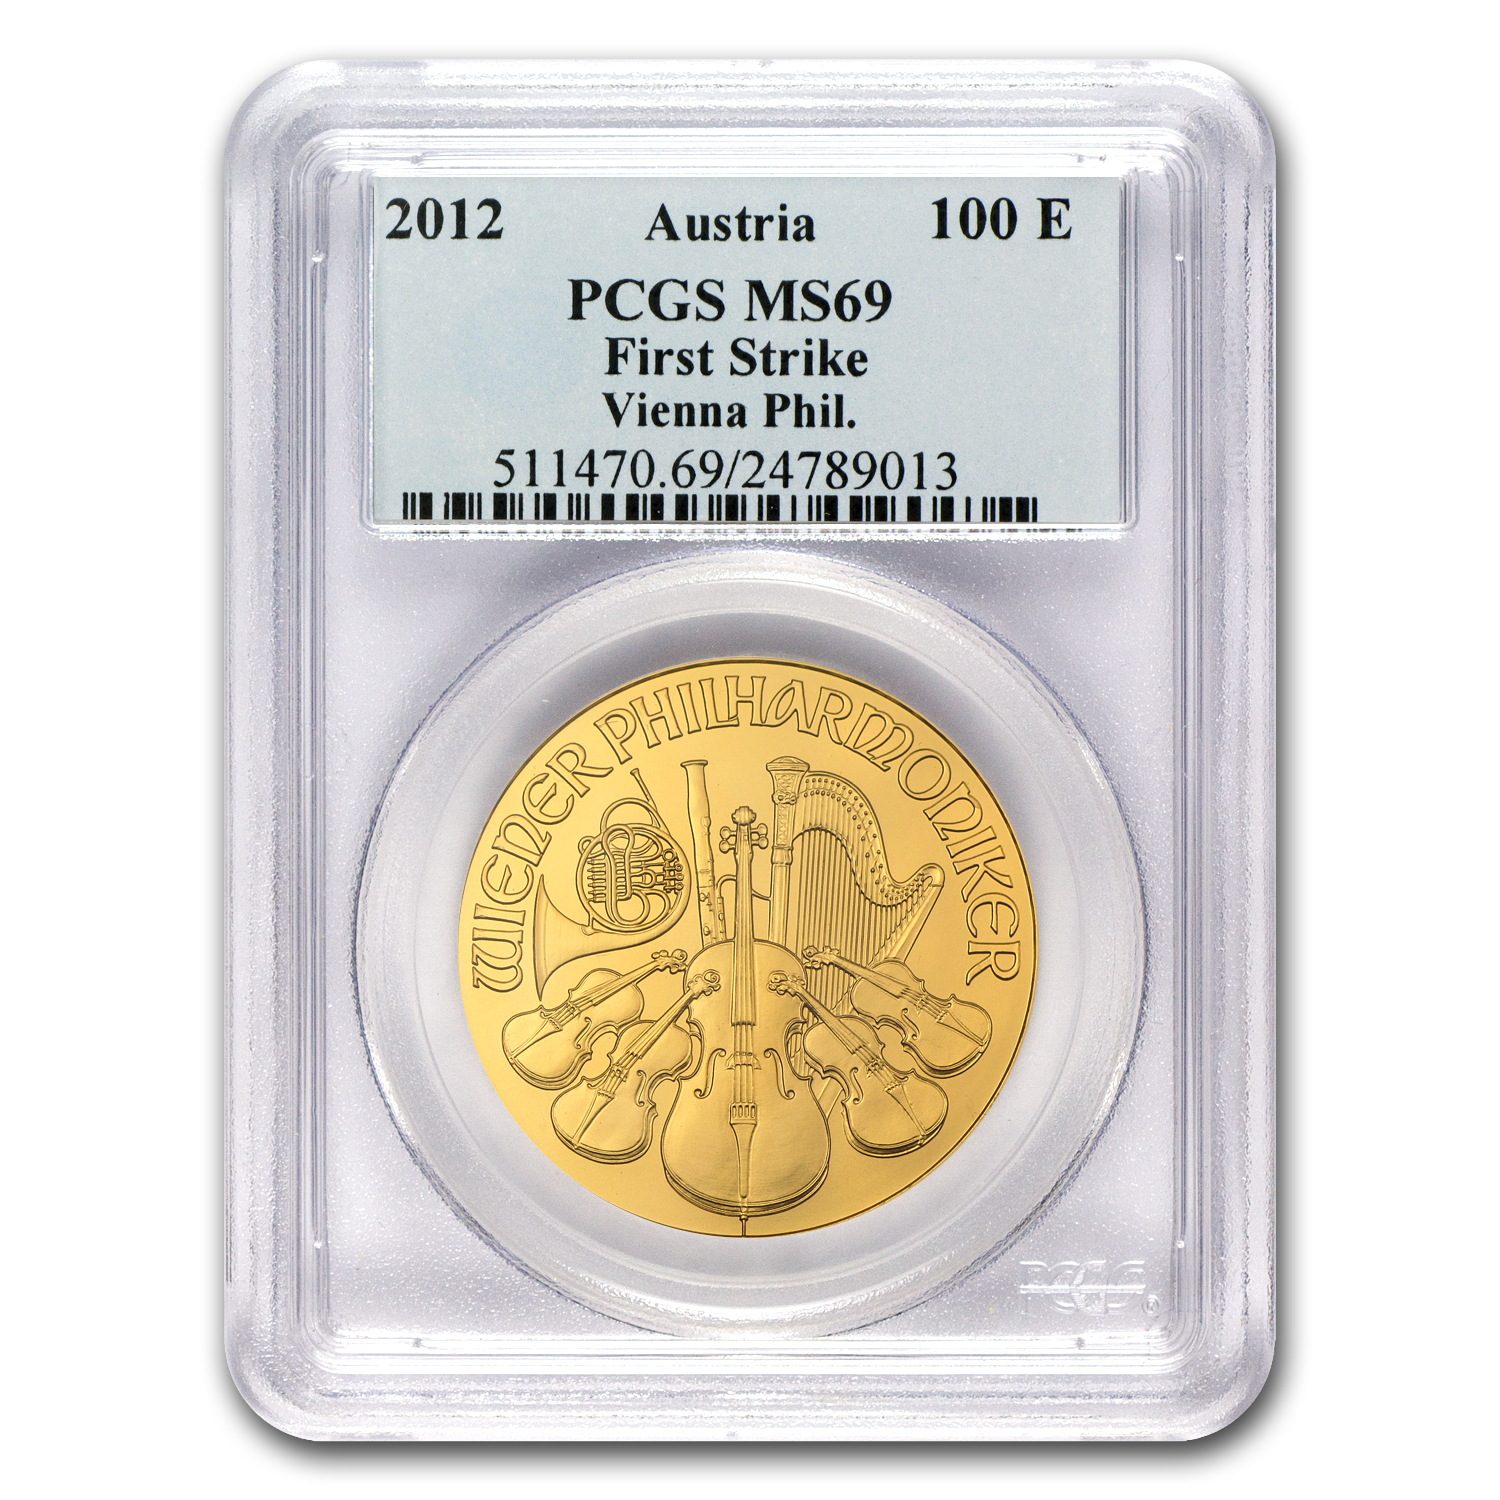 2012 1 oz Gold Austrian Philharmonic MS-69 PCGS (FS)